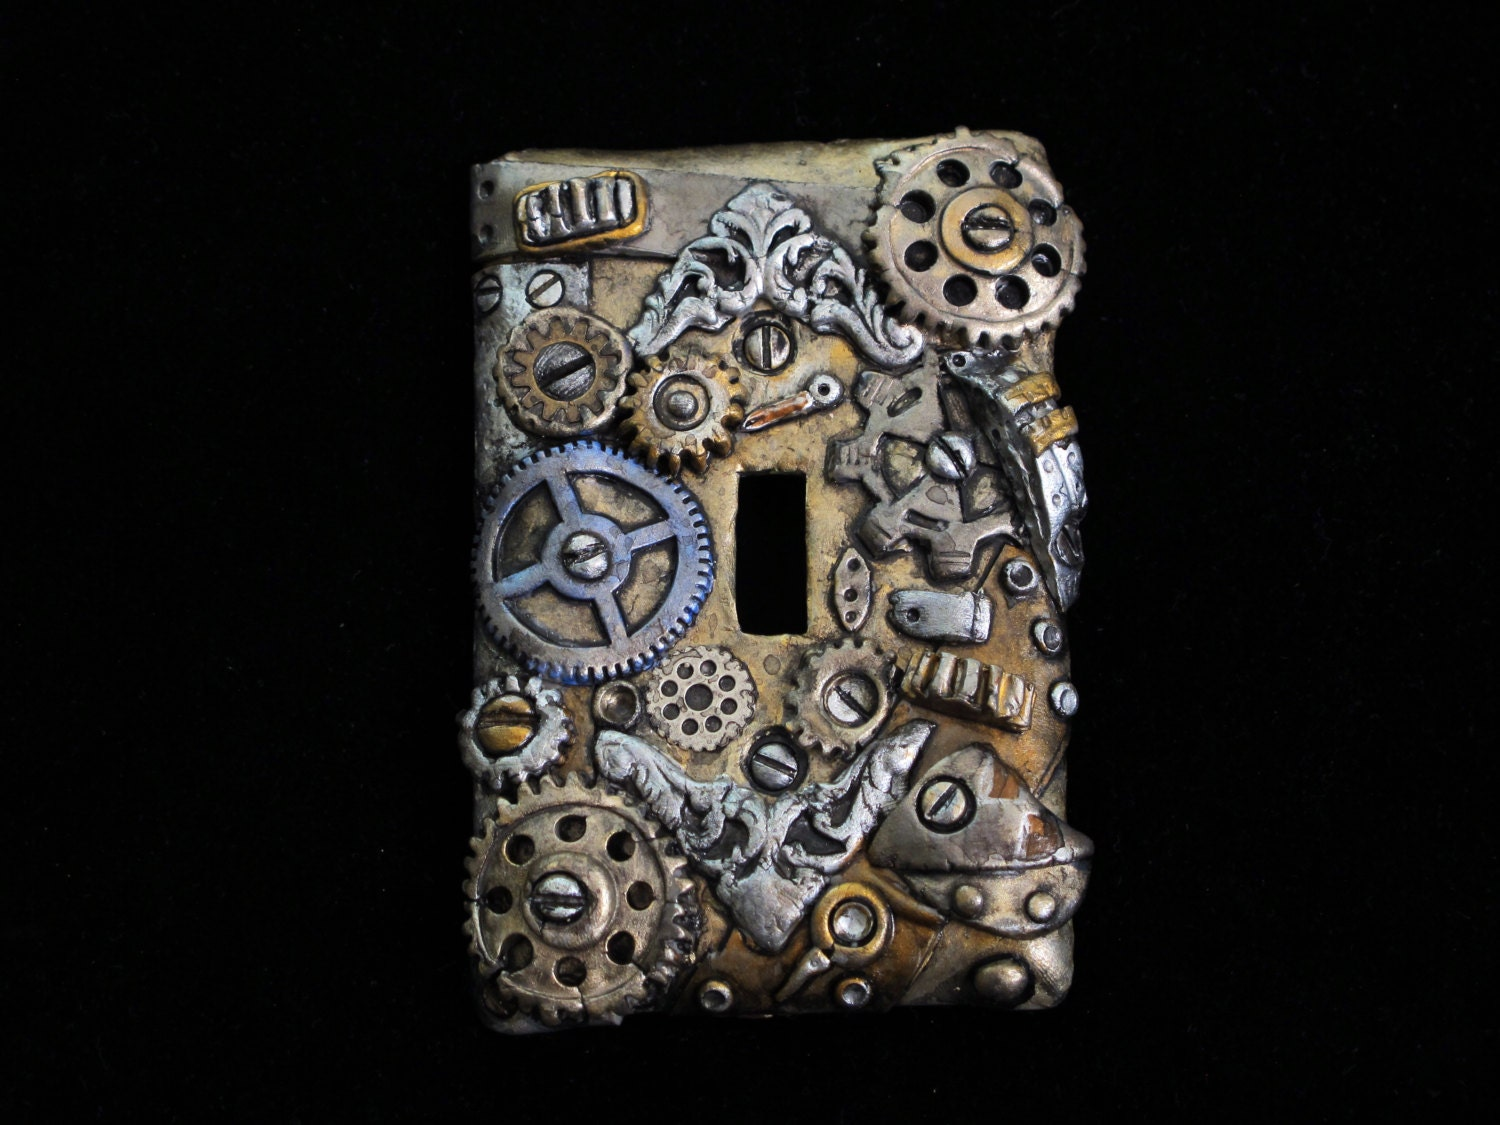 Unique Steampunk Light Switch Cover Add A Touch Of Steampunk